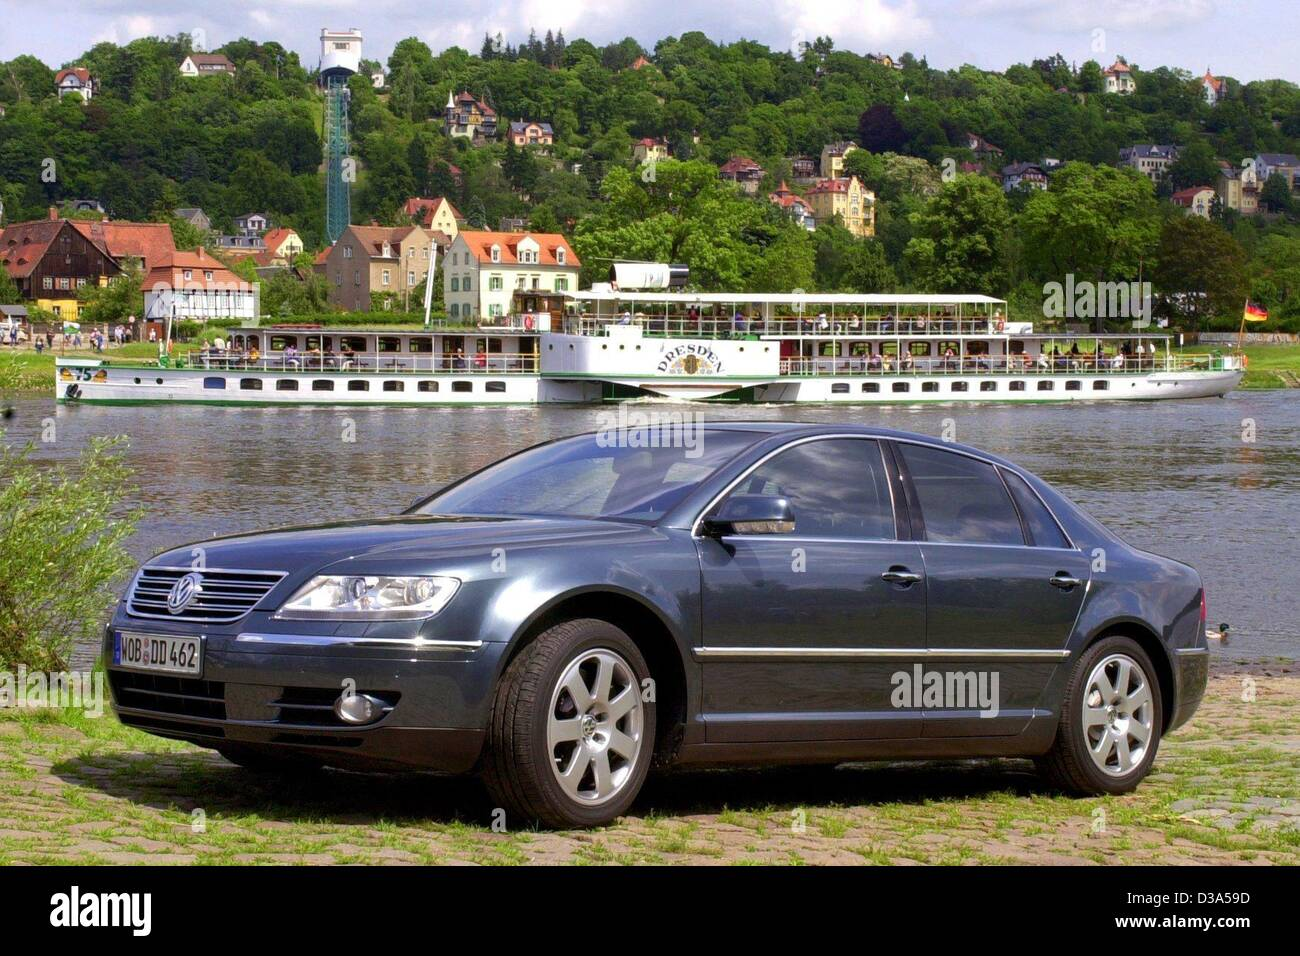 (dpa) - A Phaeton, the new car by German automobile producer Volkswagen (VW), is parked on the bank of the river Stock Photo